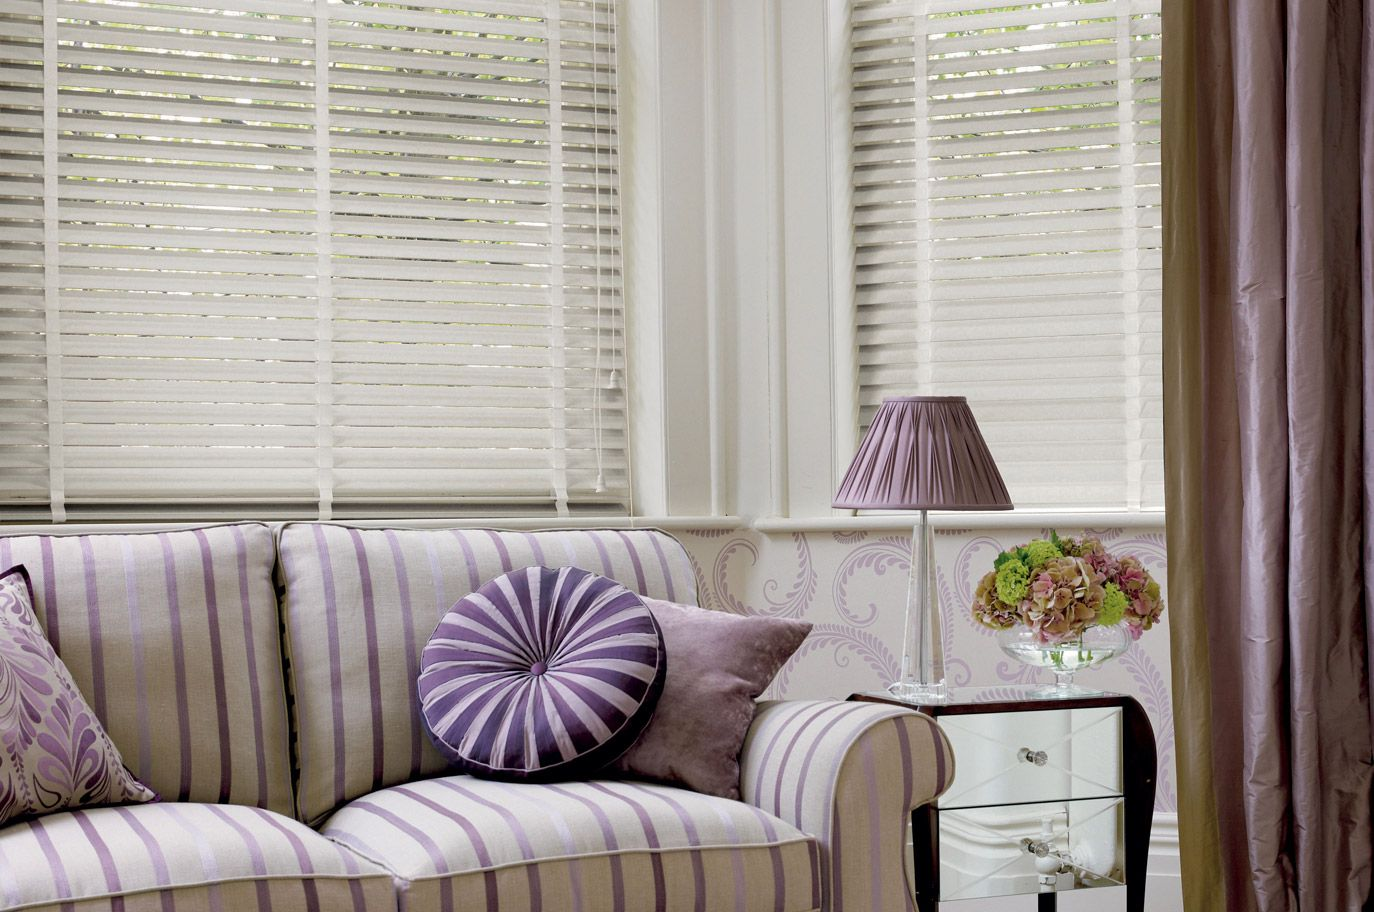 Uncategorized/birch tree fabric window panels/all products home decor window treatments curtains - How To Measure For Blinds Blinds Can Sit Either Inside Or Outside A Window Recess It S Important To Decide Which You Want Before Taking Yo